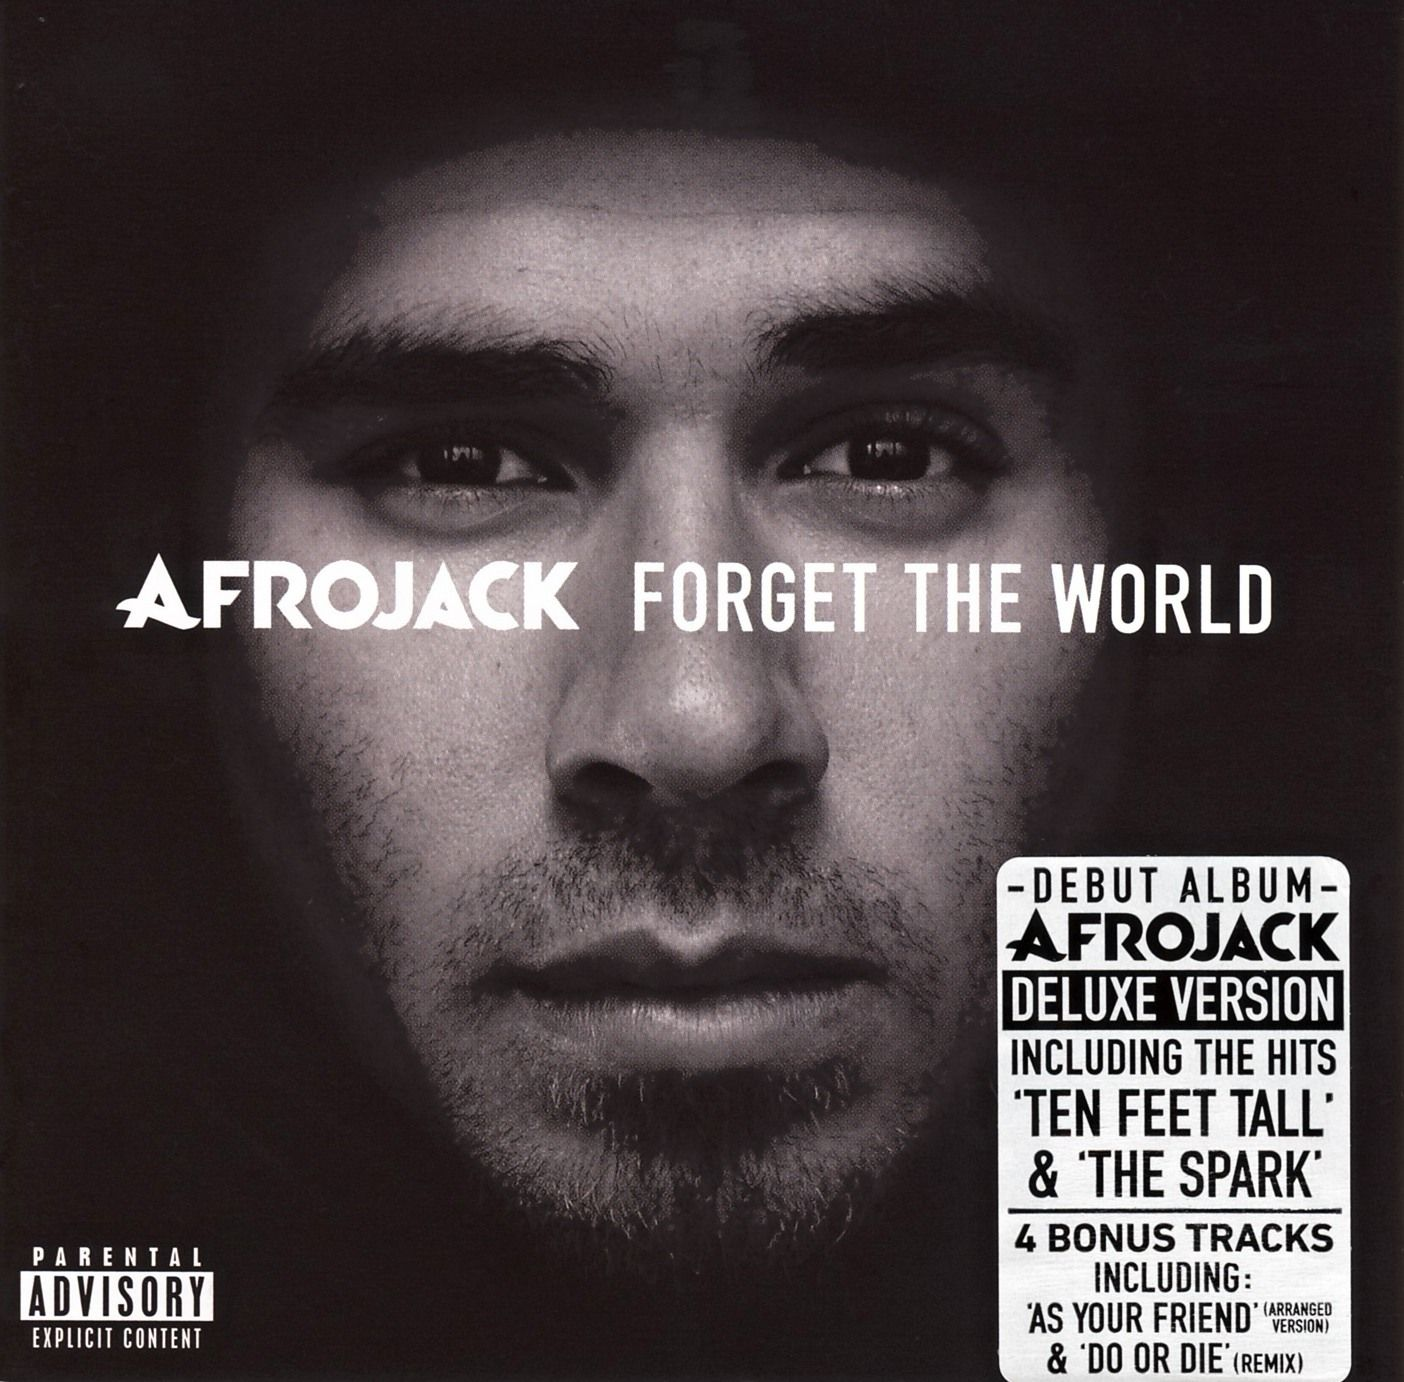 Afrojack - Forget The World album cover